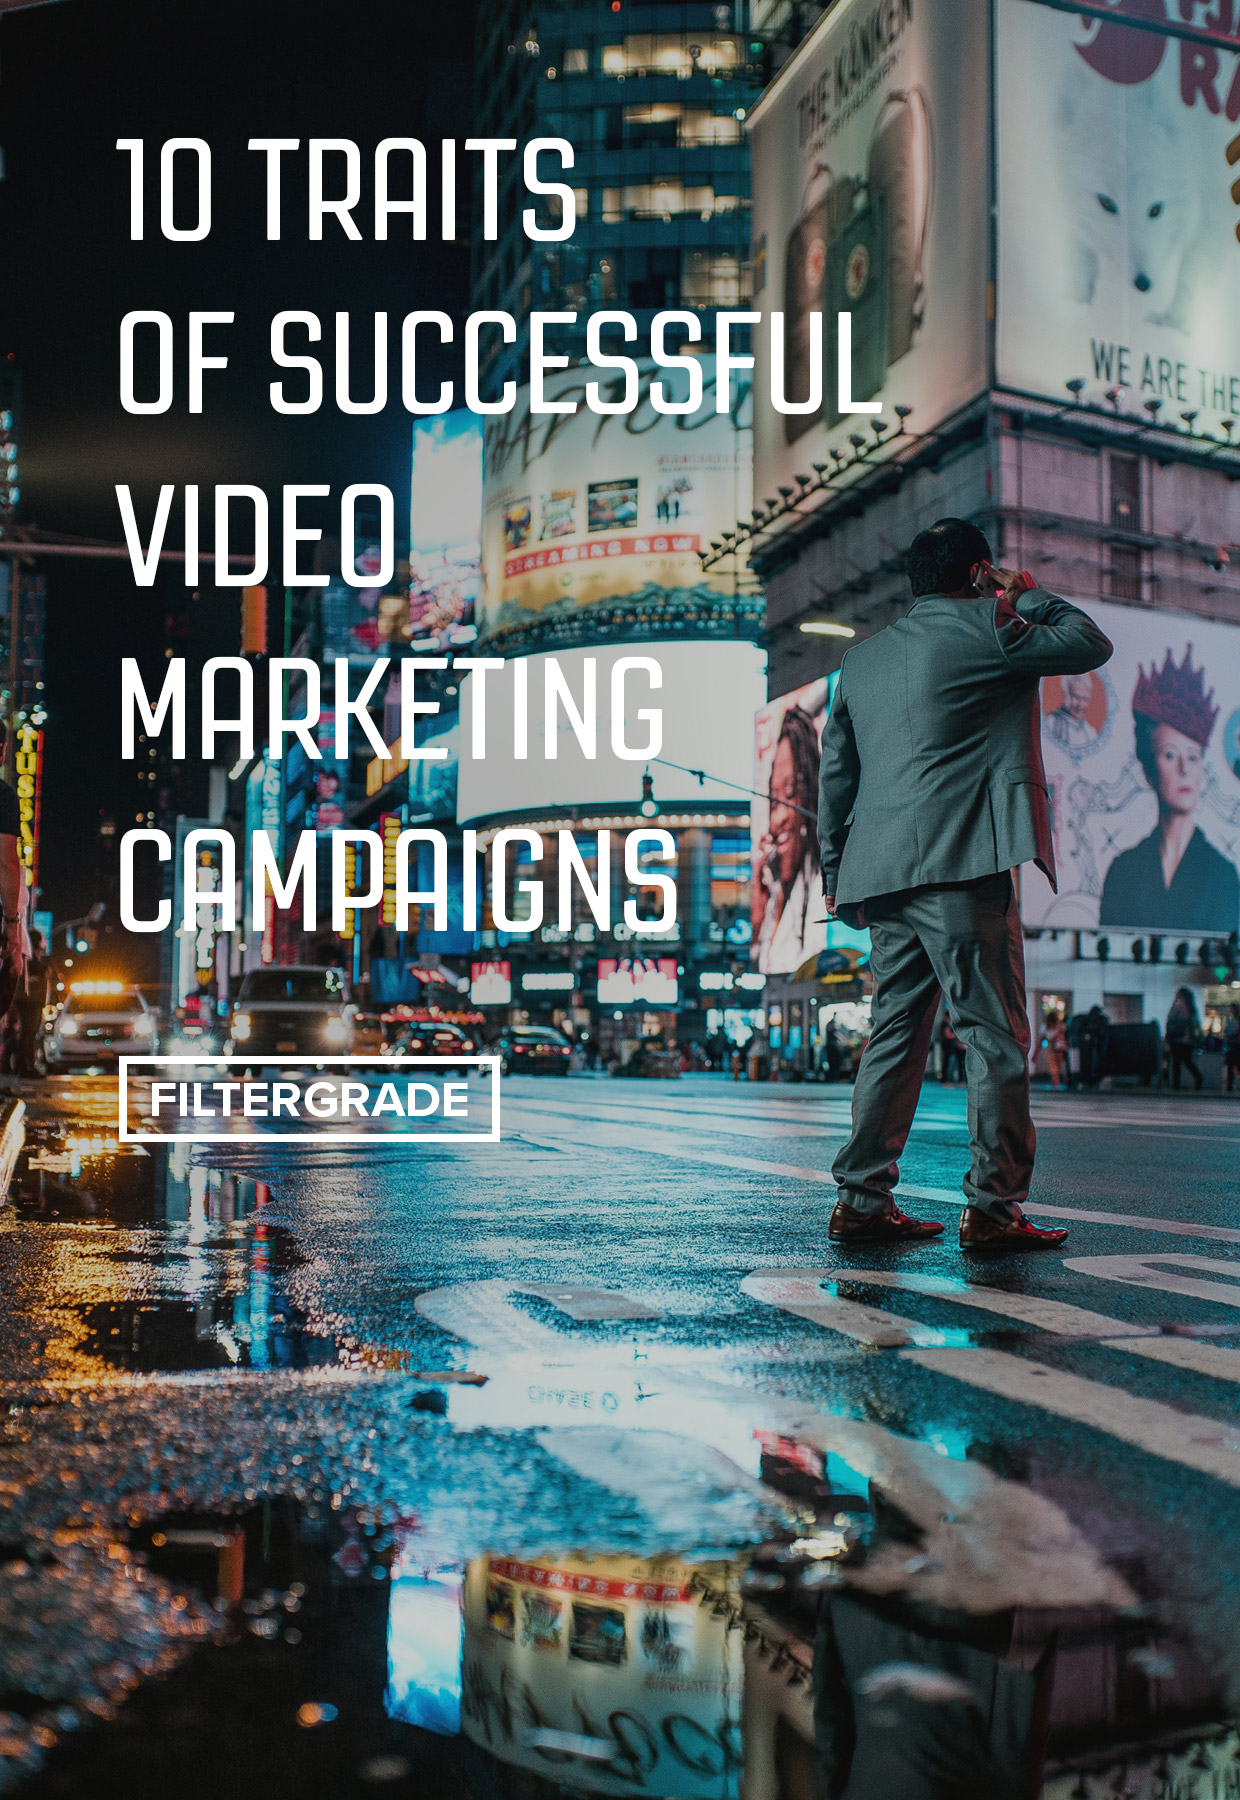 10 Traits of Successful Video Marketing Campaigns